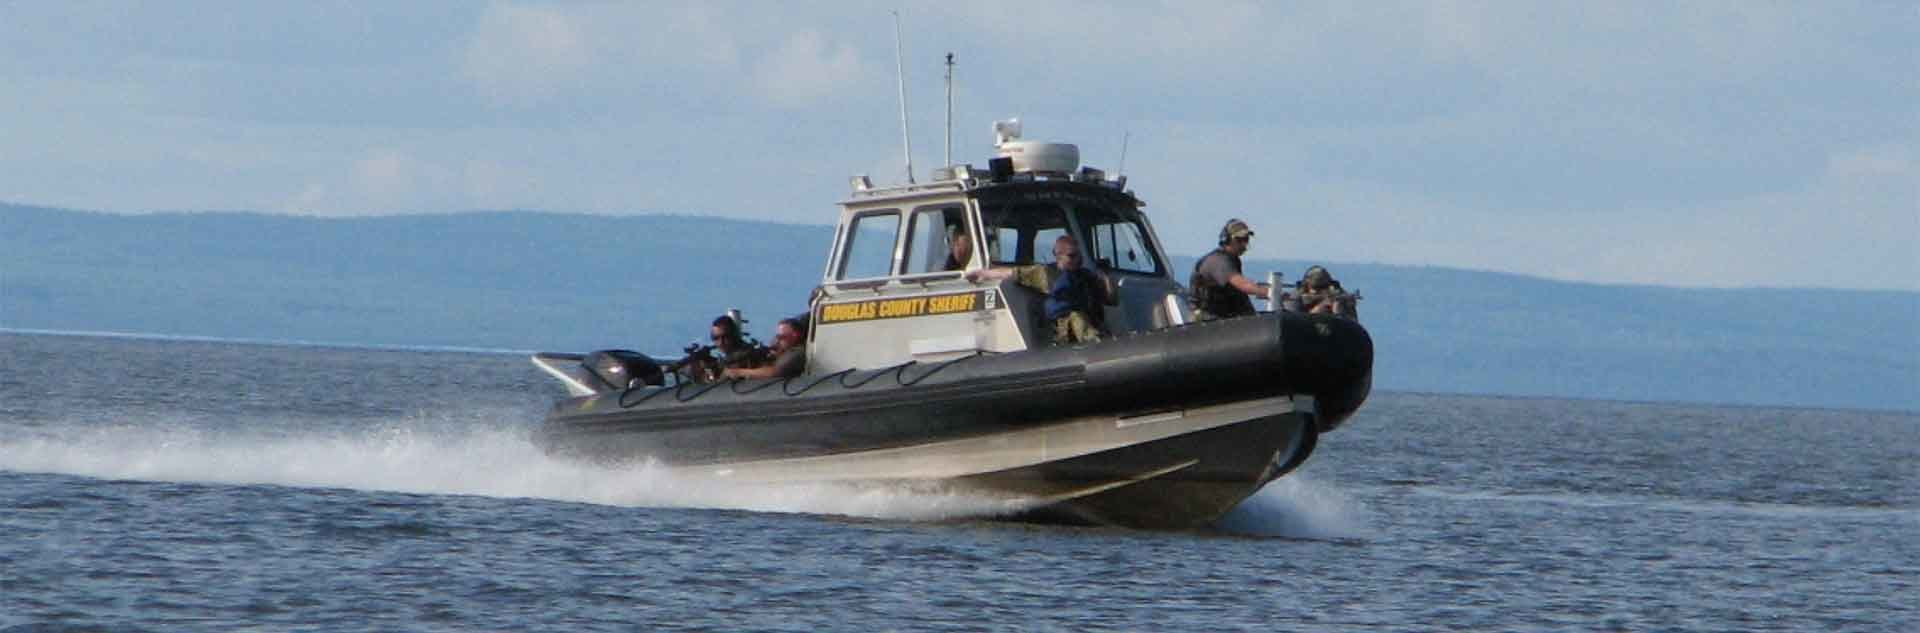 Douglas County Sheriff patrol on their boat.